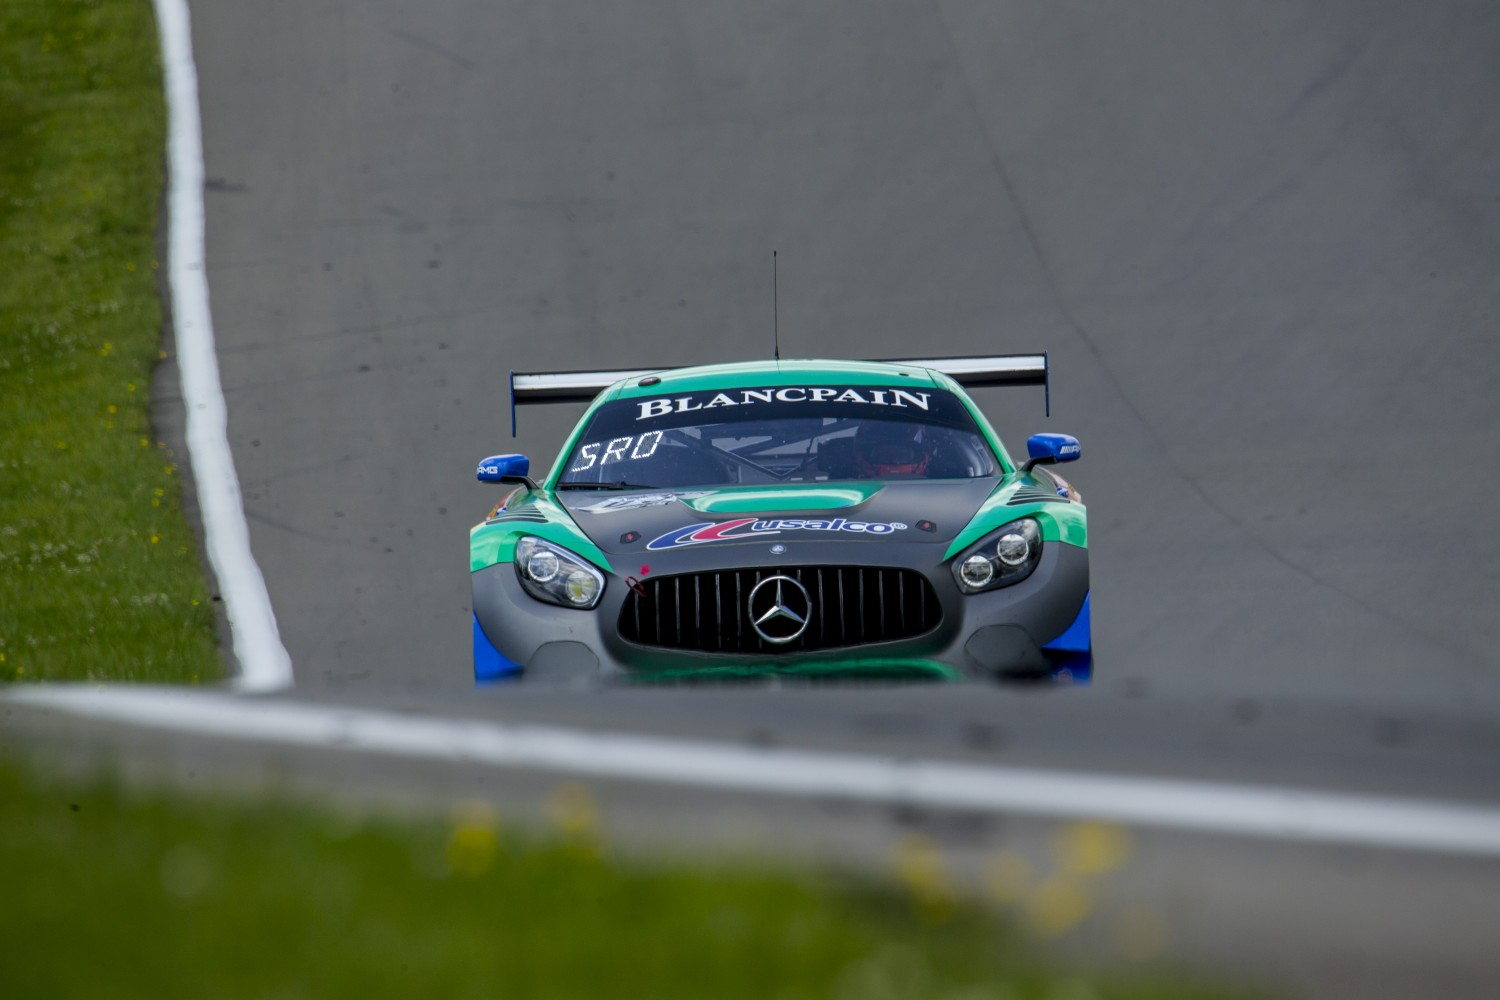 #63 Mercedes-AMG GT3 of David Askew and Ryan Dalziel, DXDT Racing, Watkins Glen World Challenge America, Watkins Glen NY  | SRO Motorsports Group